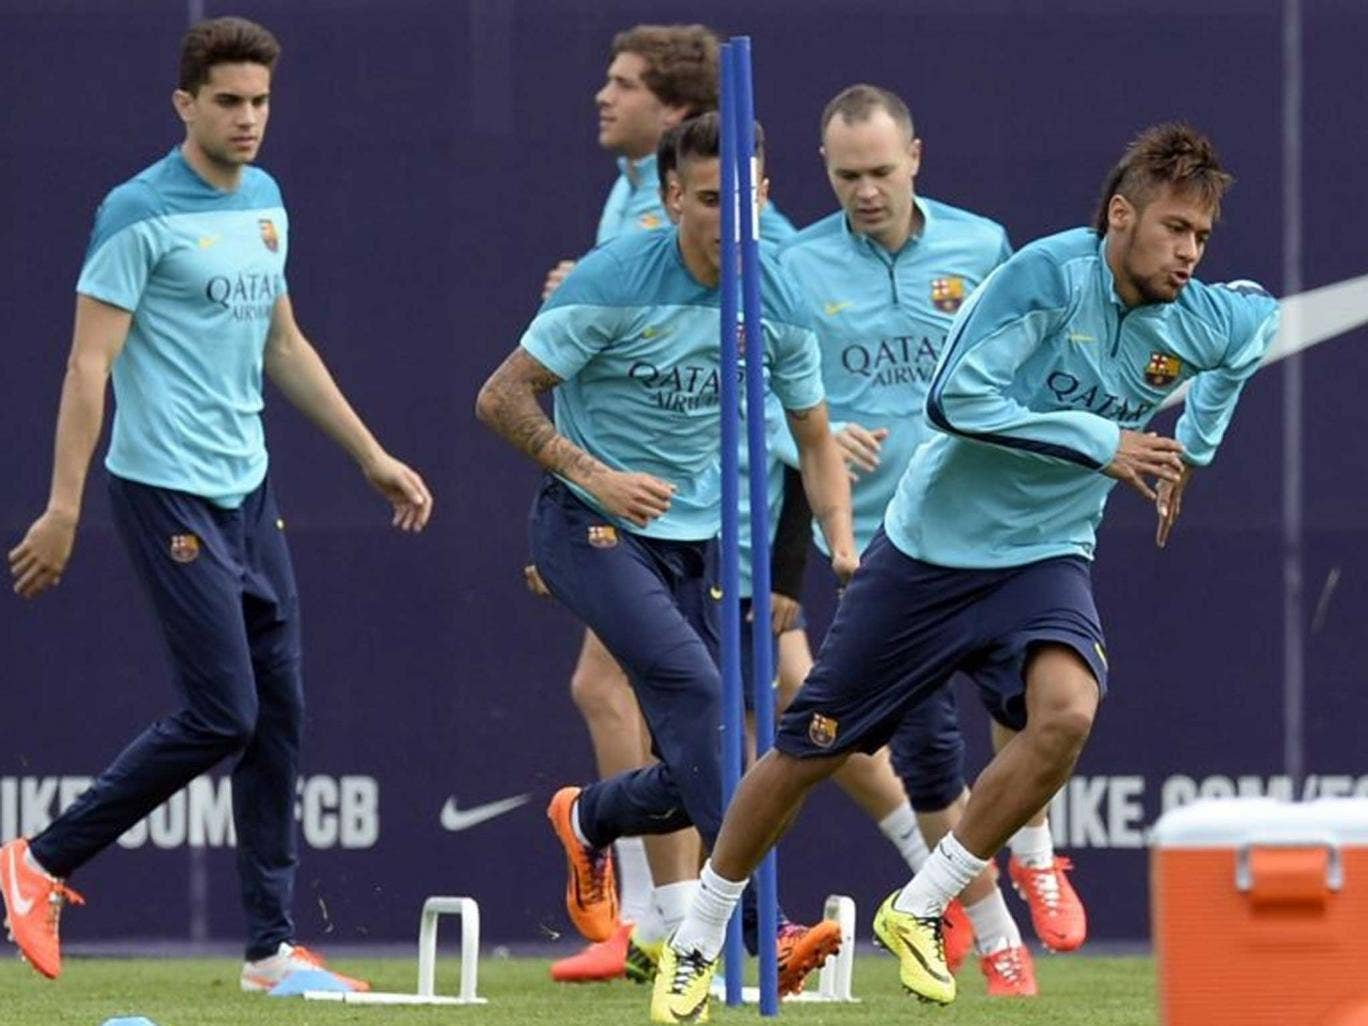 Training camp: Neymar (right) exercises with Barcelona team-mates ahead of today's Clasico against Real Madrid